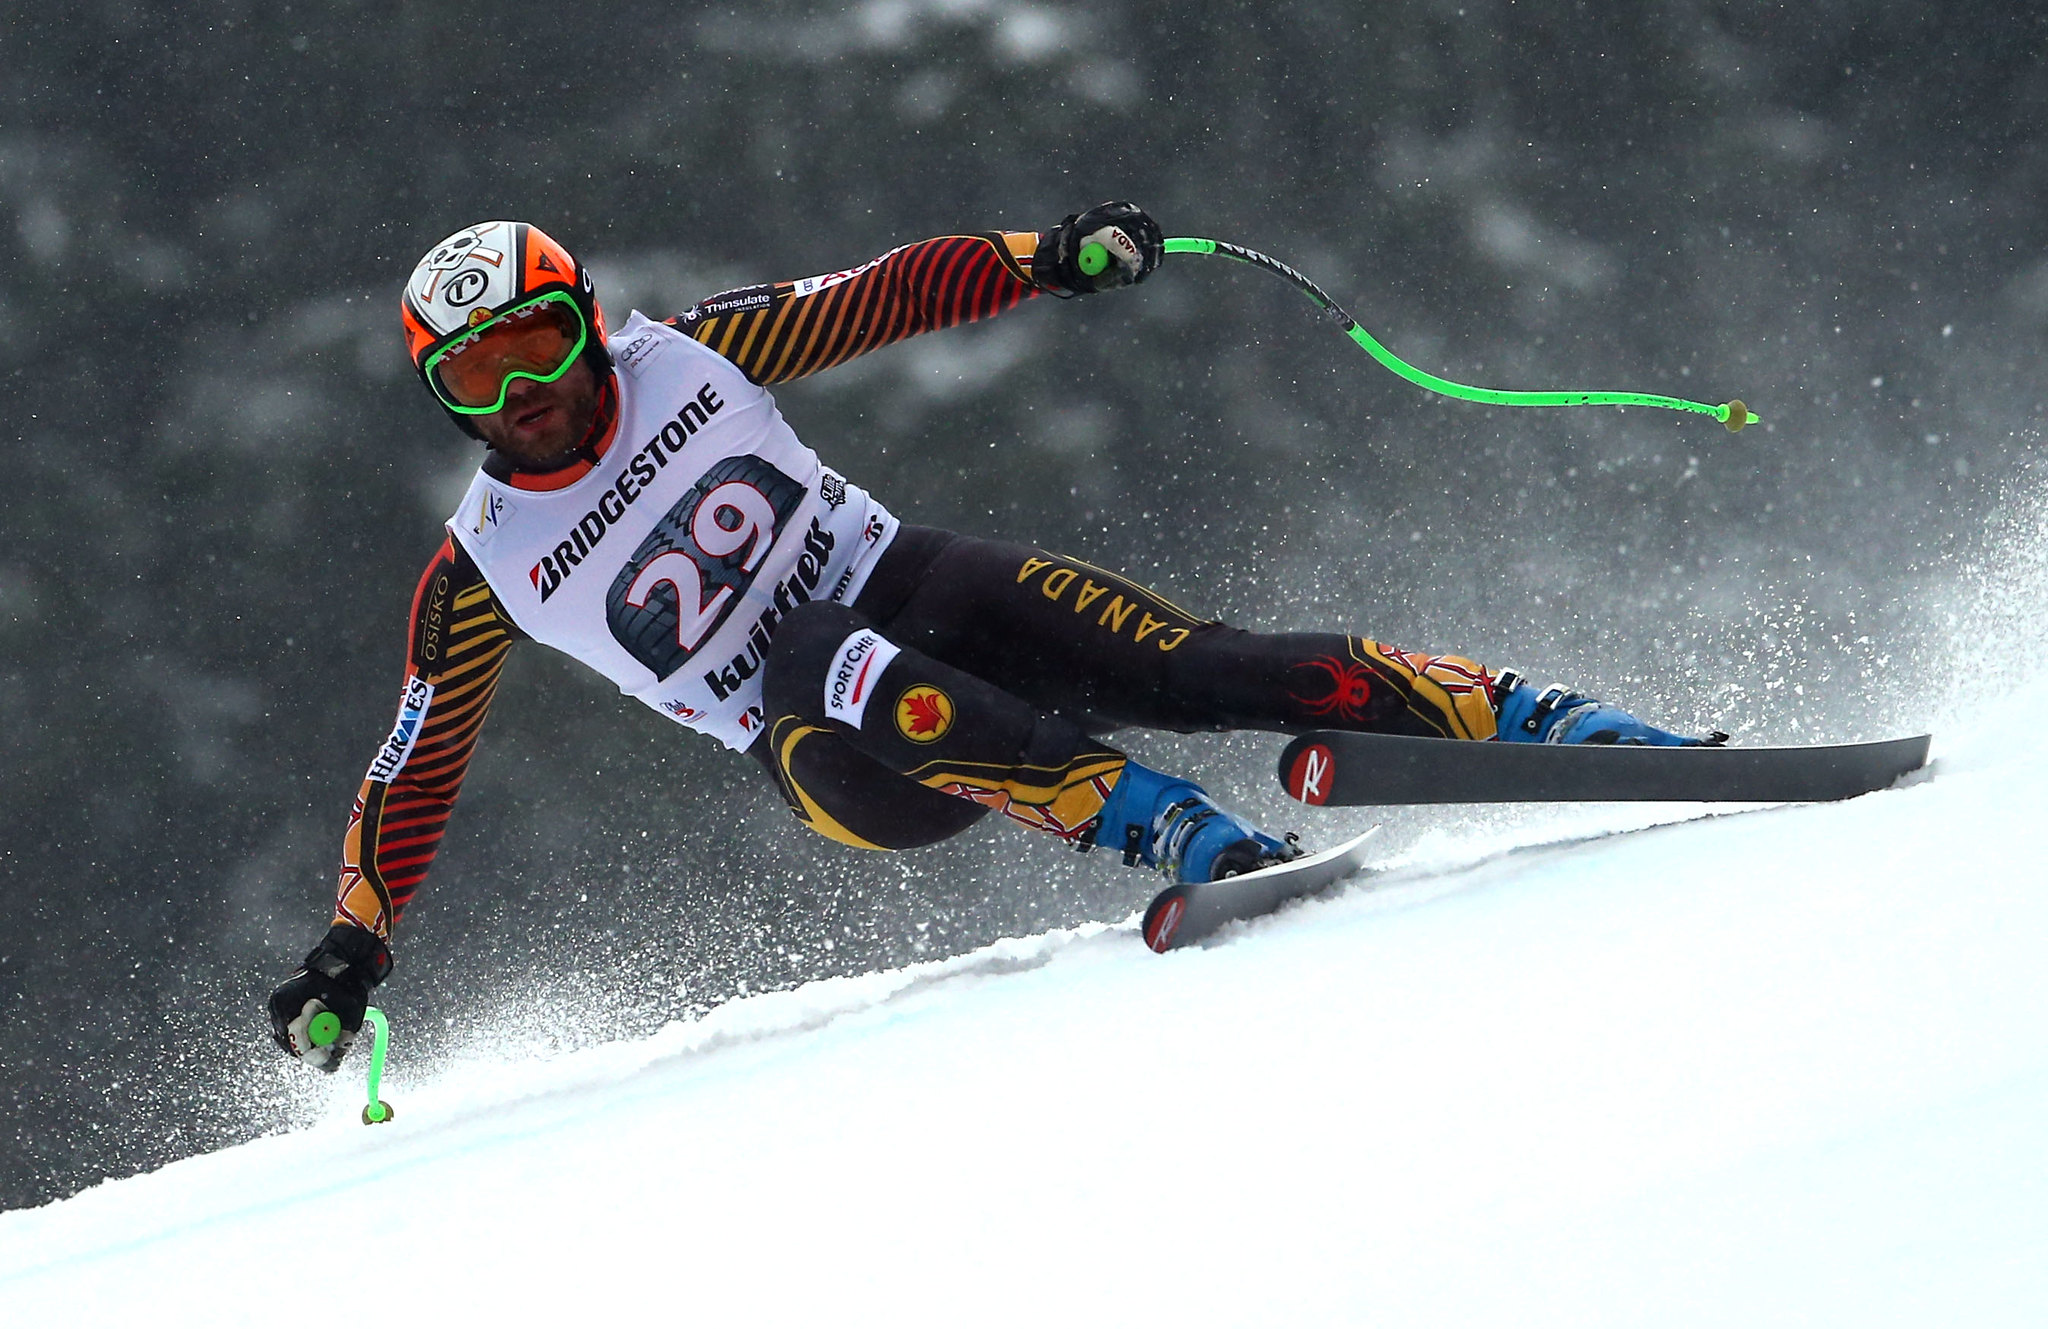 Jan Hudec flies down the mountain in Kvitfjell, NOR during the downhill